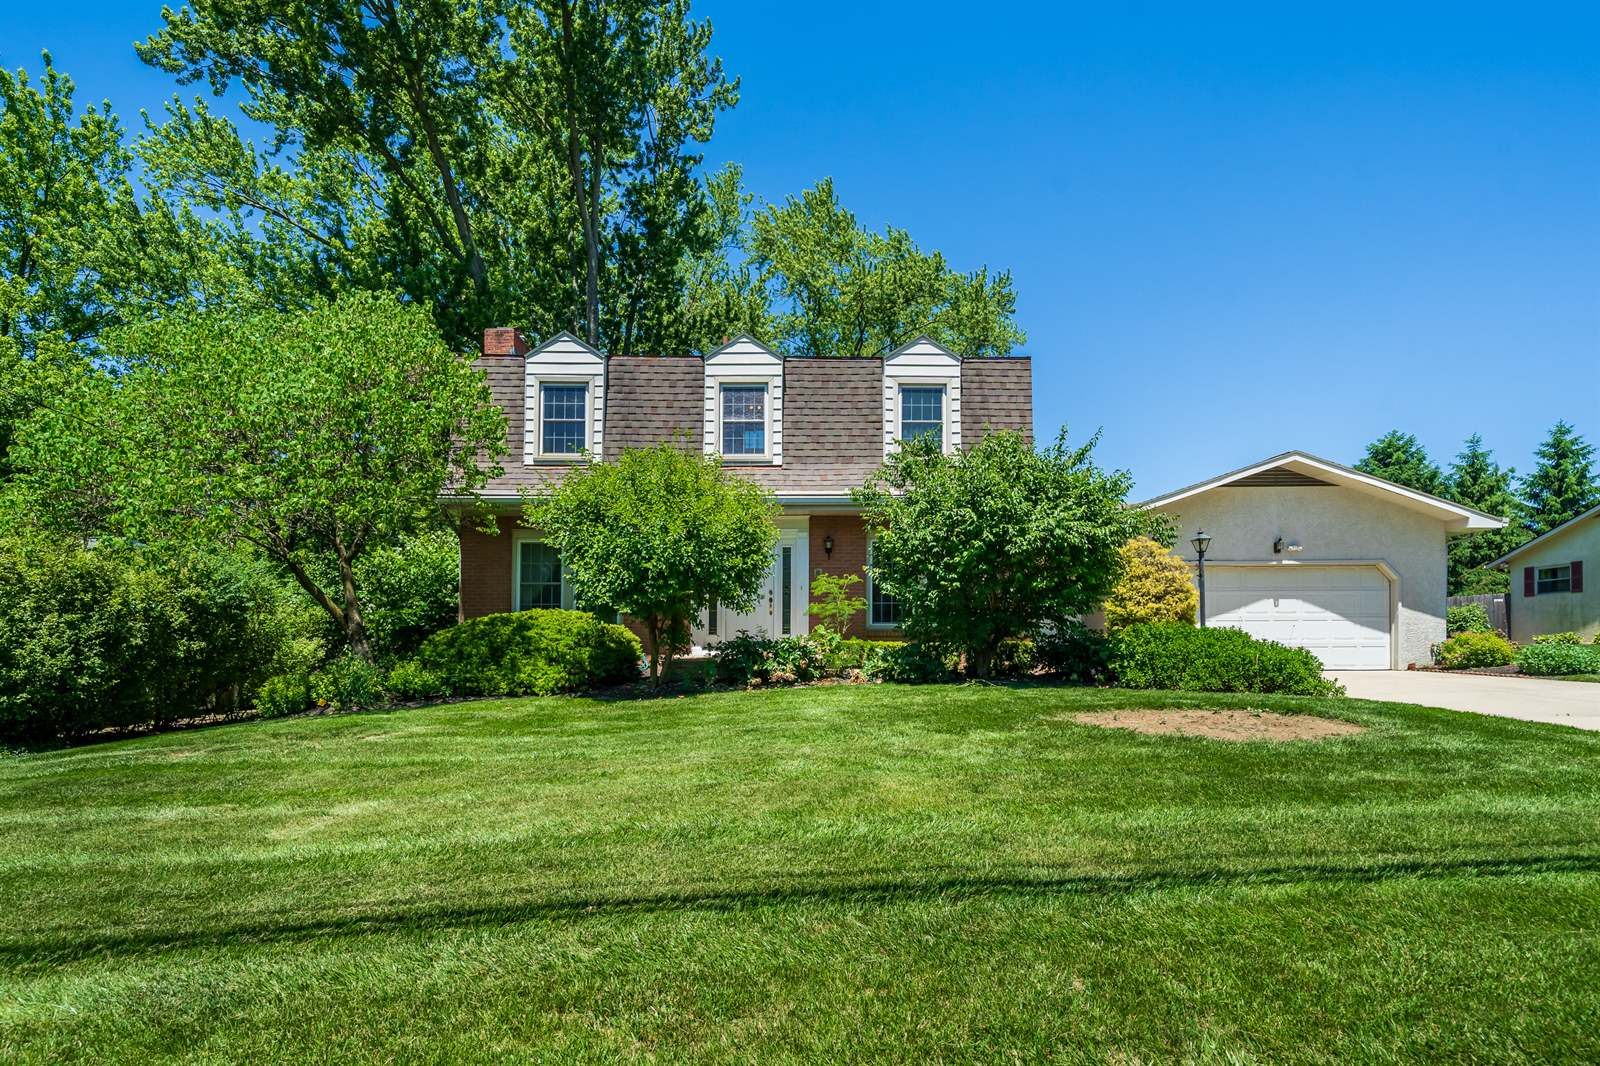 2456 Middlesex Road, Upper Arlington, OH 43220